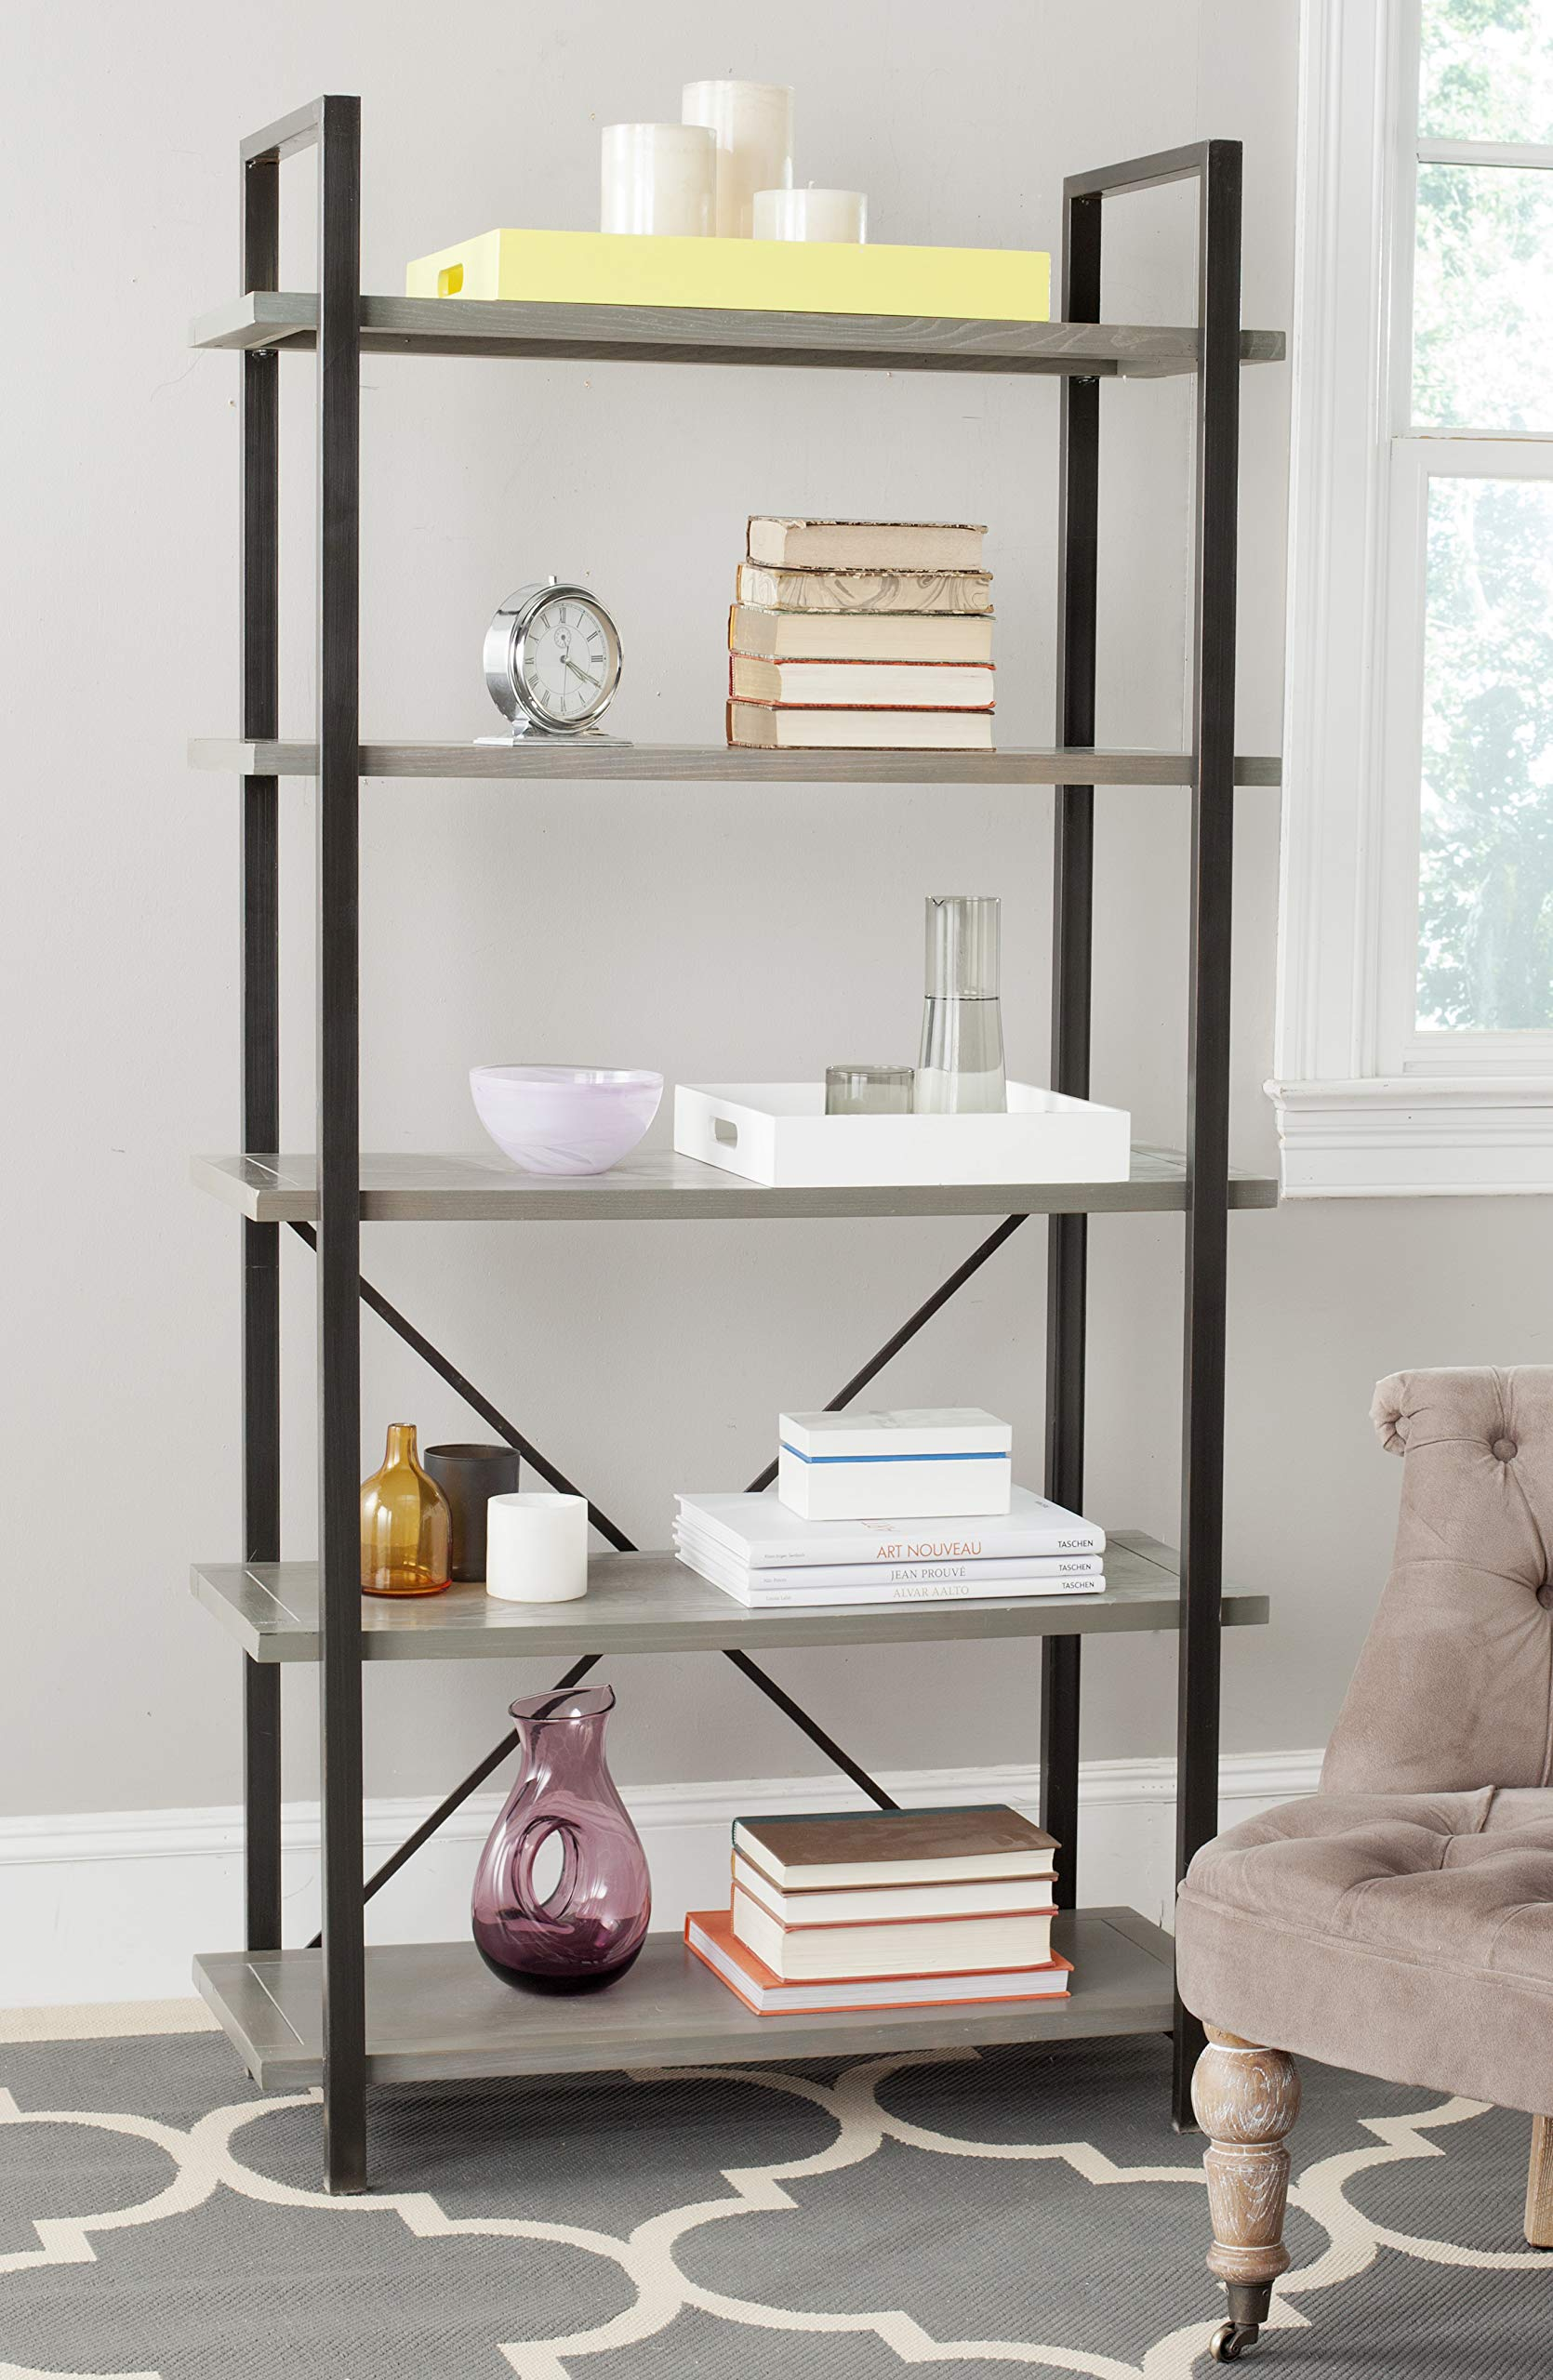 Safavieh American Homes Collection Chantel Red Maple 5-Tier Etagere